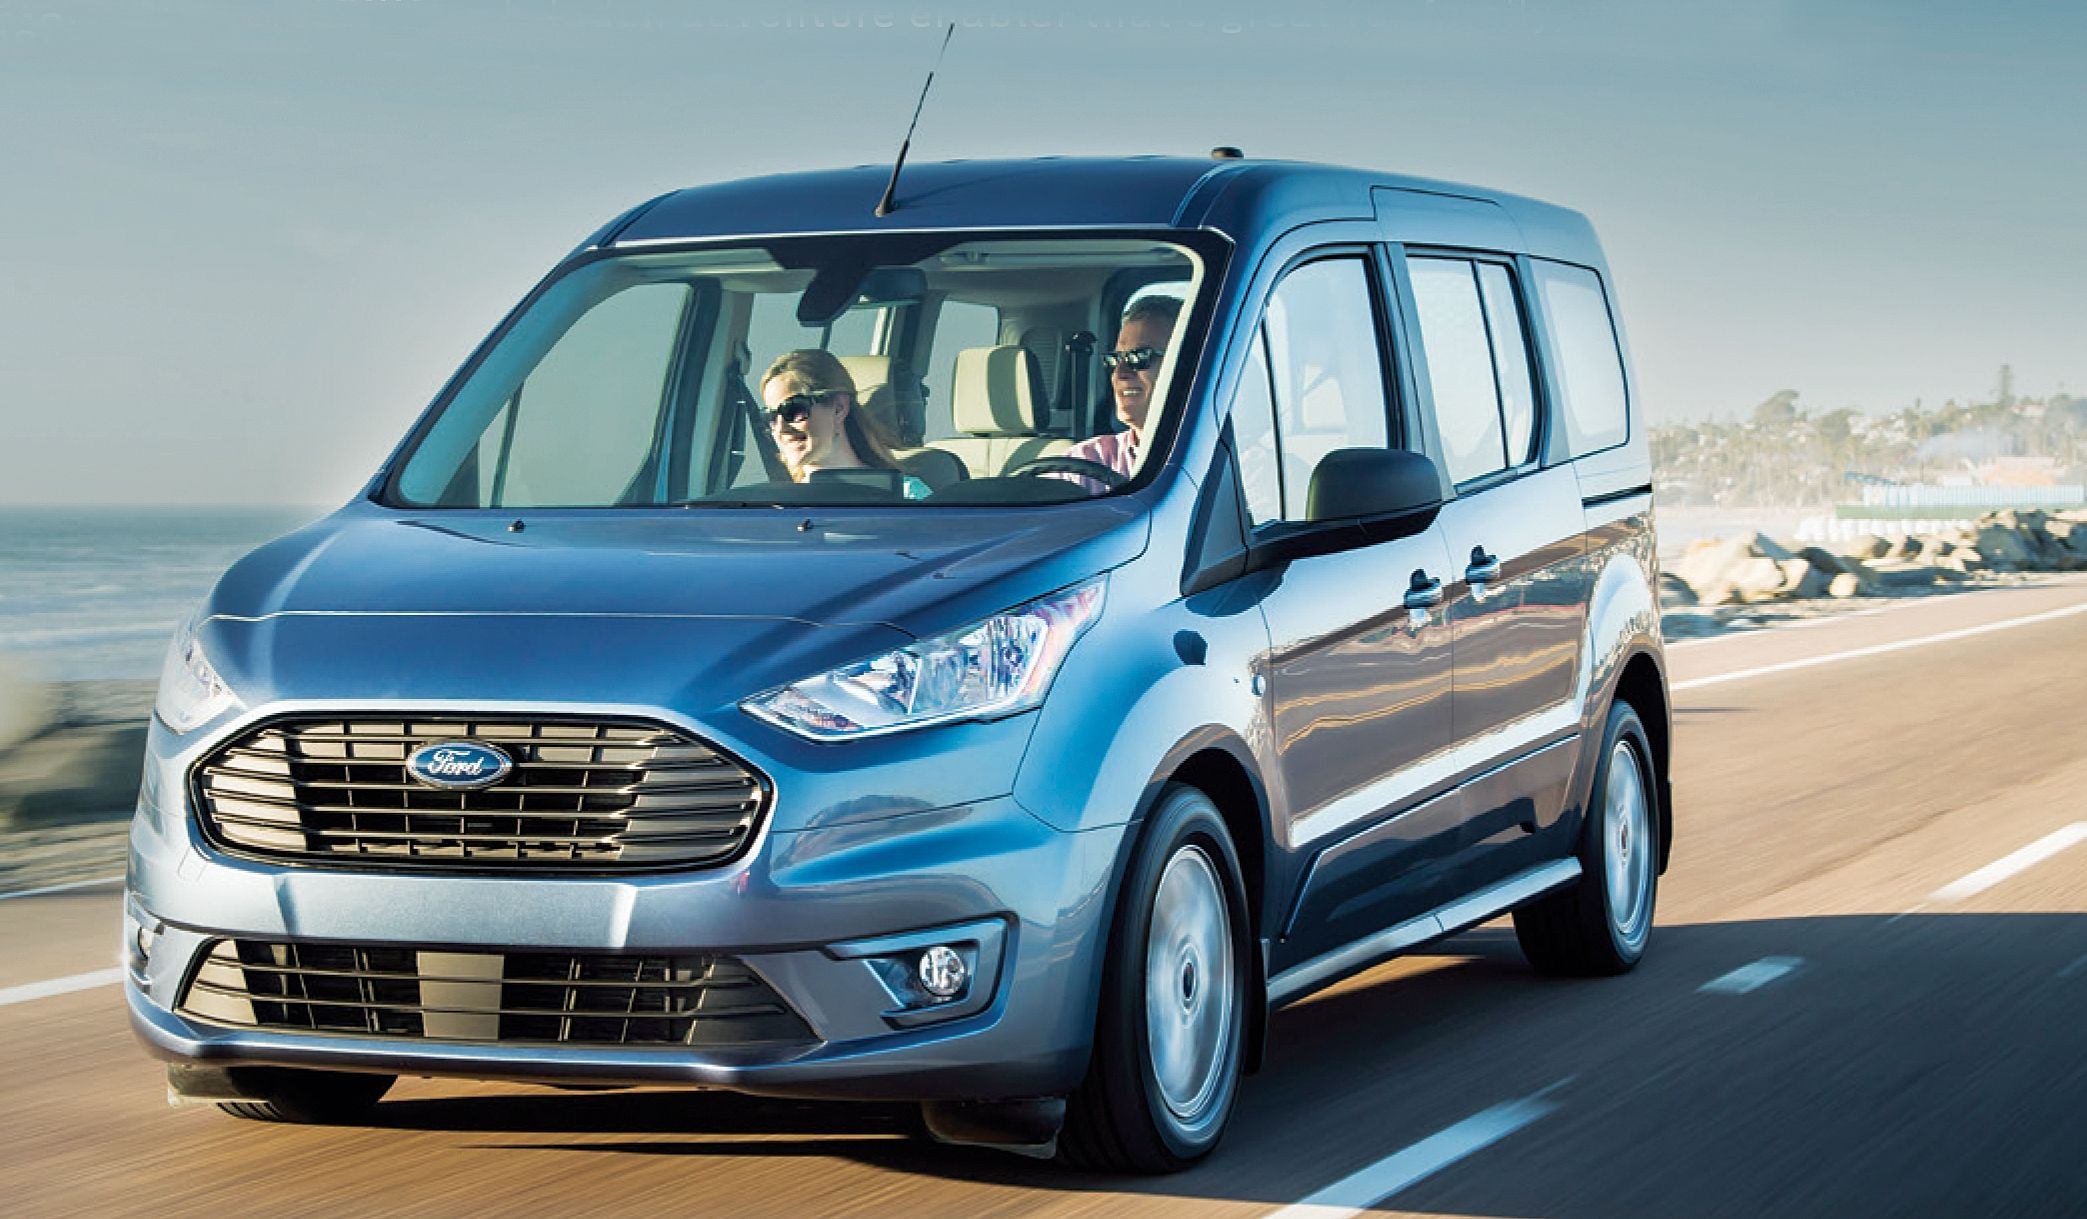 Ford Transit Google Search Ford Transit Ford Suv Car